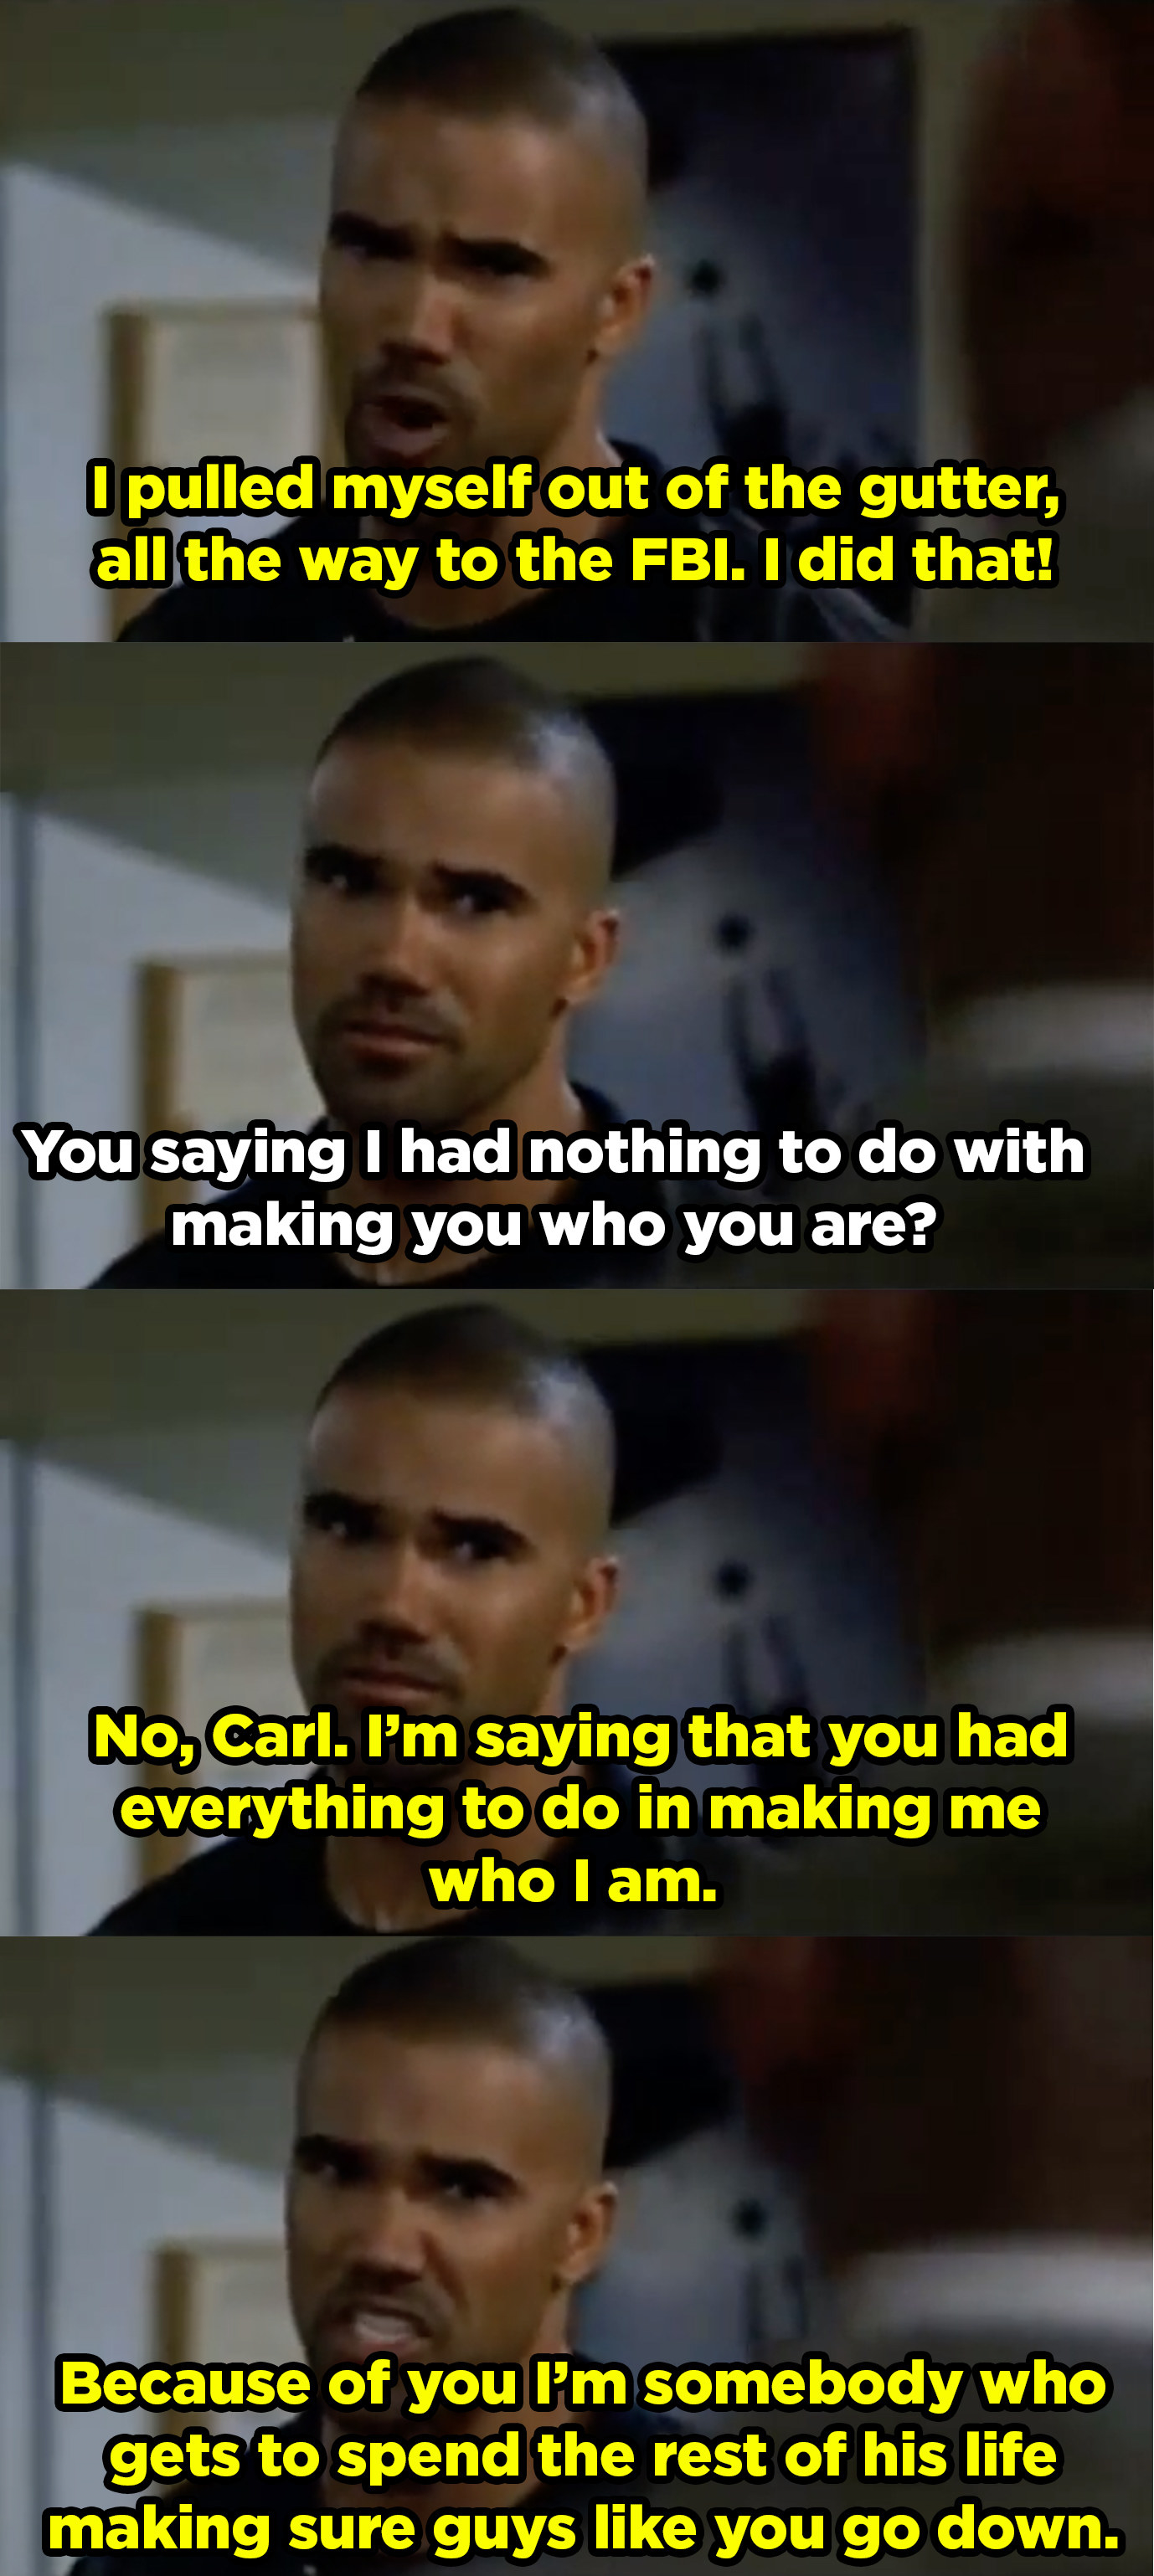 Morgan telling Carl that he was the one who pulled himself out of the gutter and that he gets to throw people like Carl in prison.